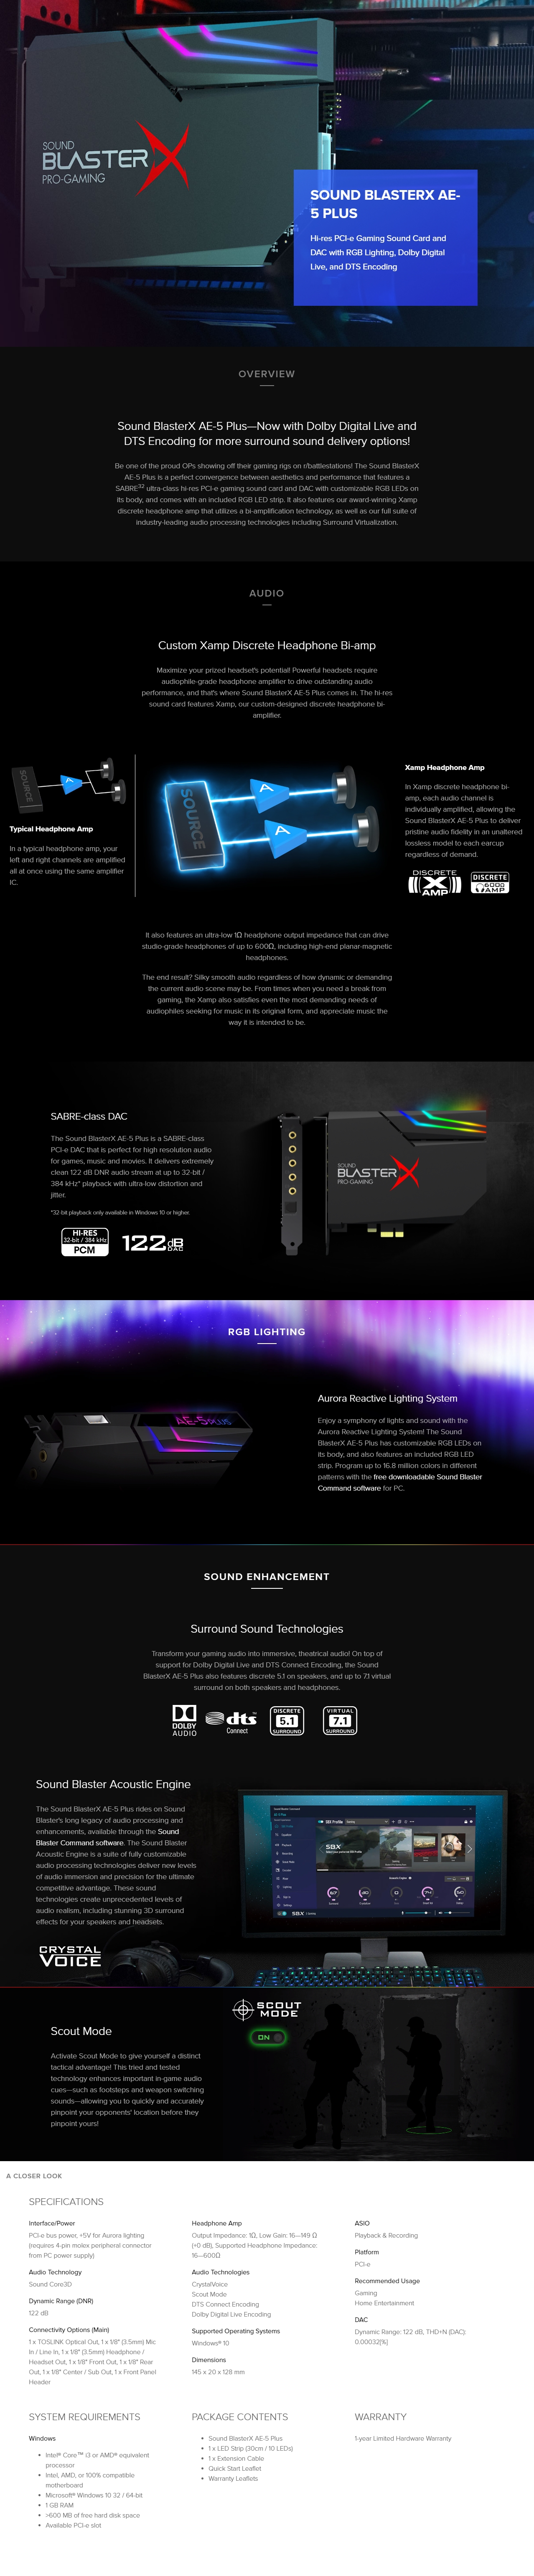 A large marketing image providing additional information about the product Creative Sound BlasterX AE-5 Plus Hi-Res PCIe Gaming Sound Card - Additional alt info not provided